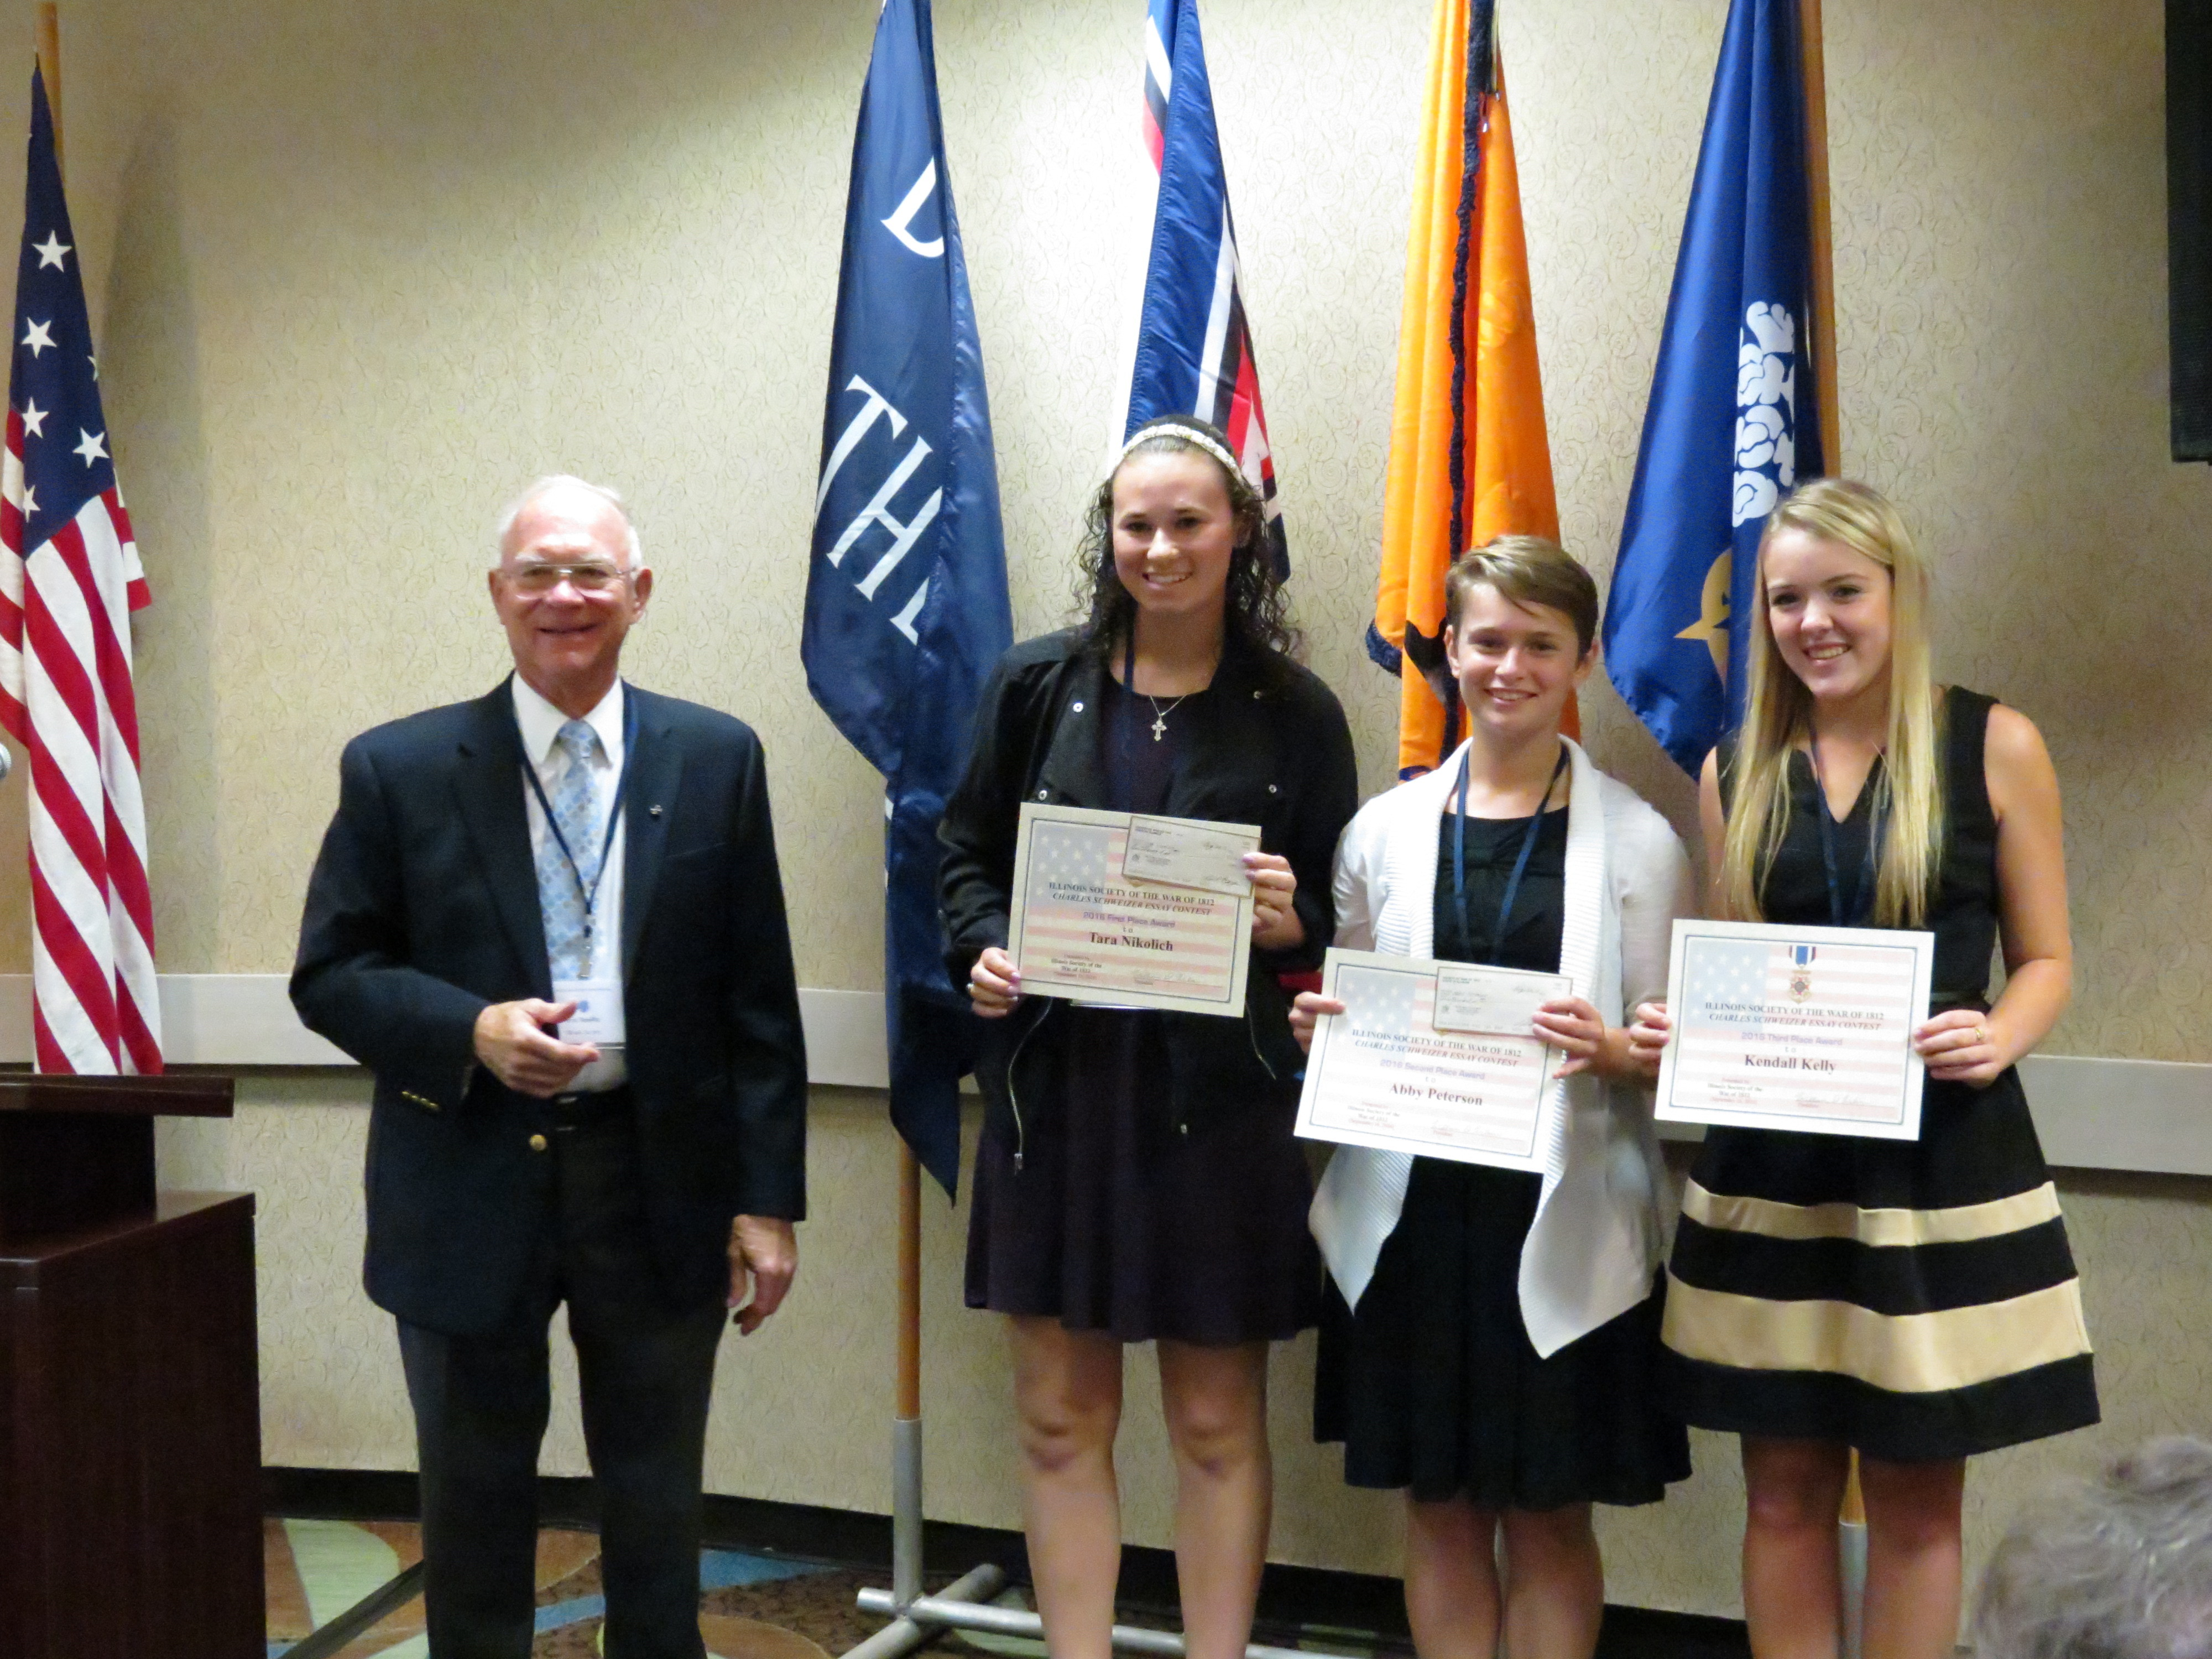 Scholarship winners for state